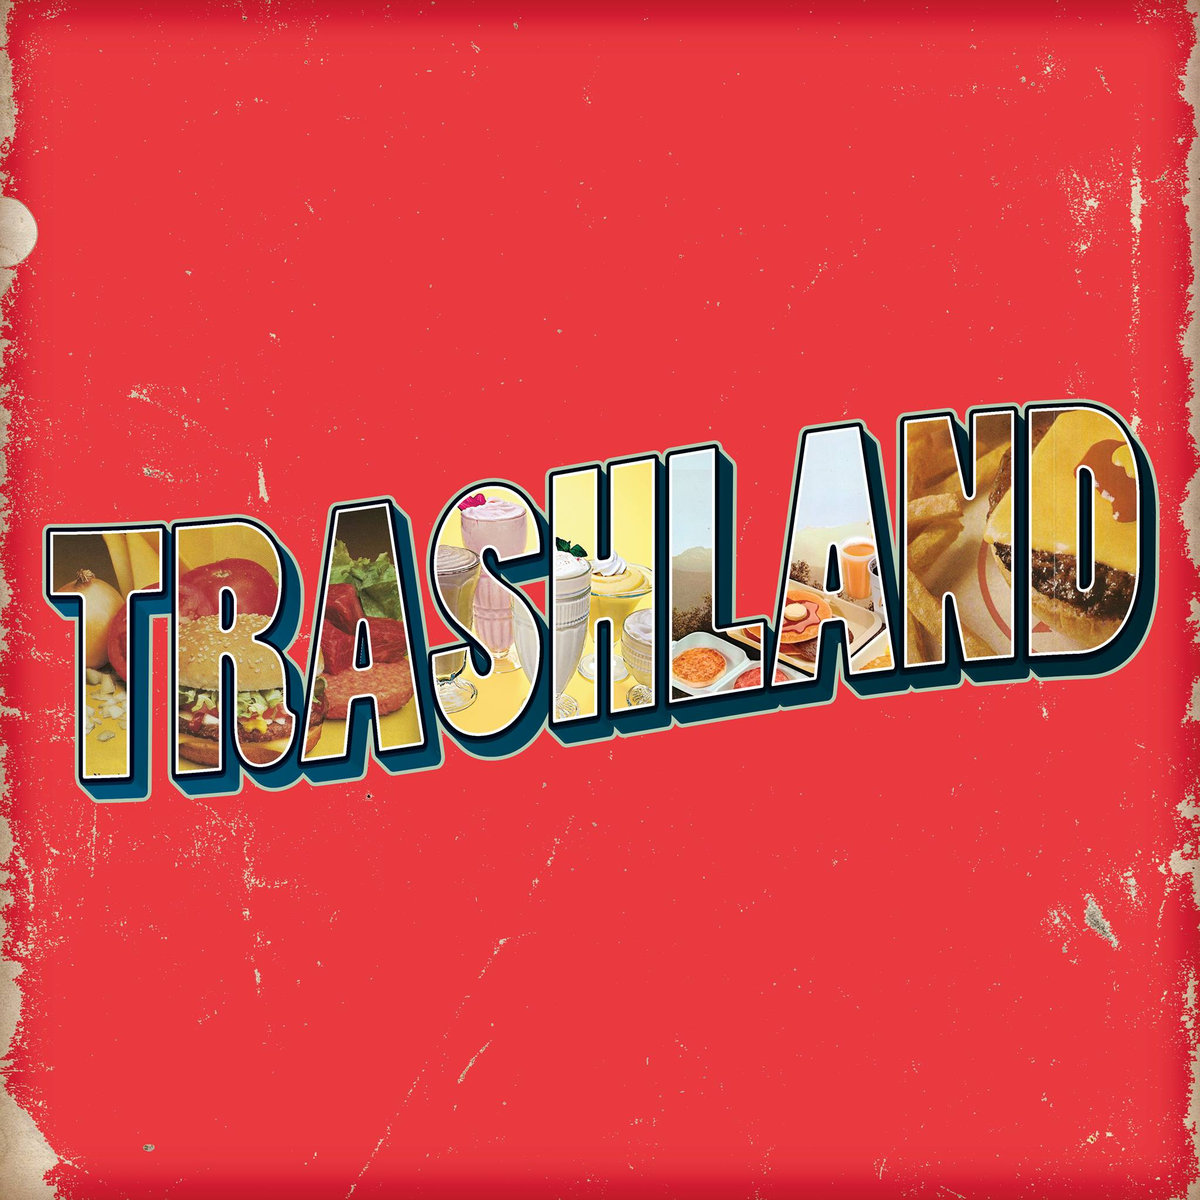 Unqualified Nurse Band - Trashland